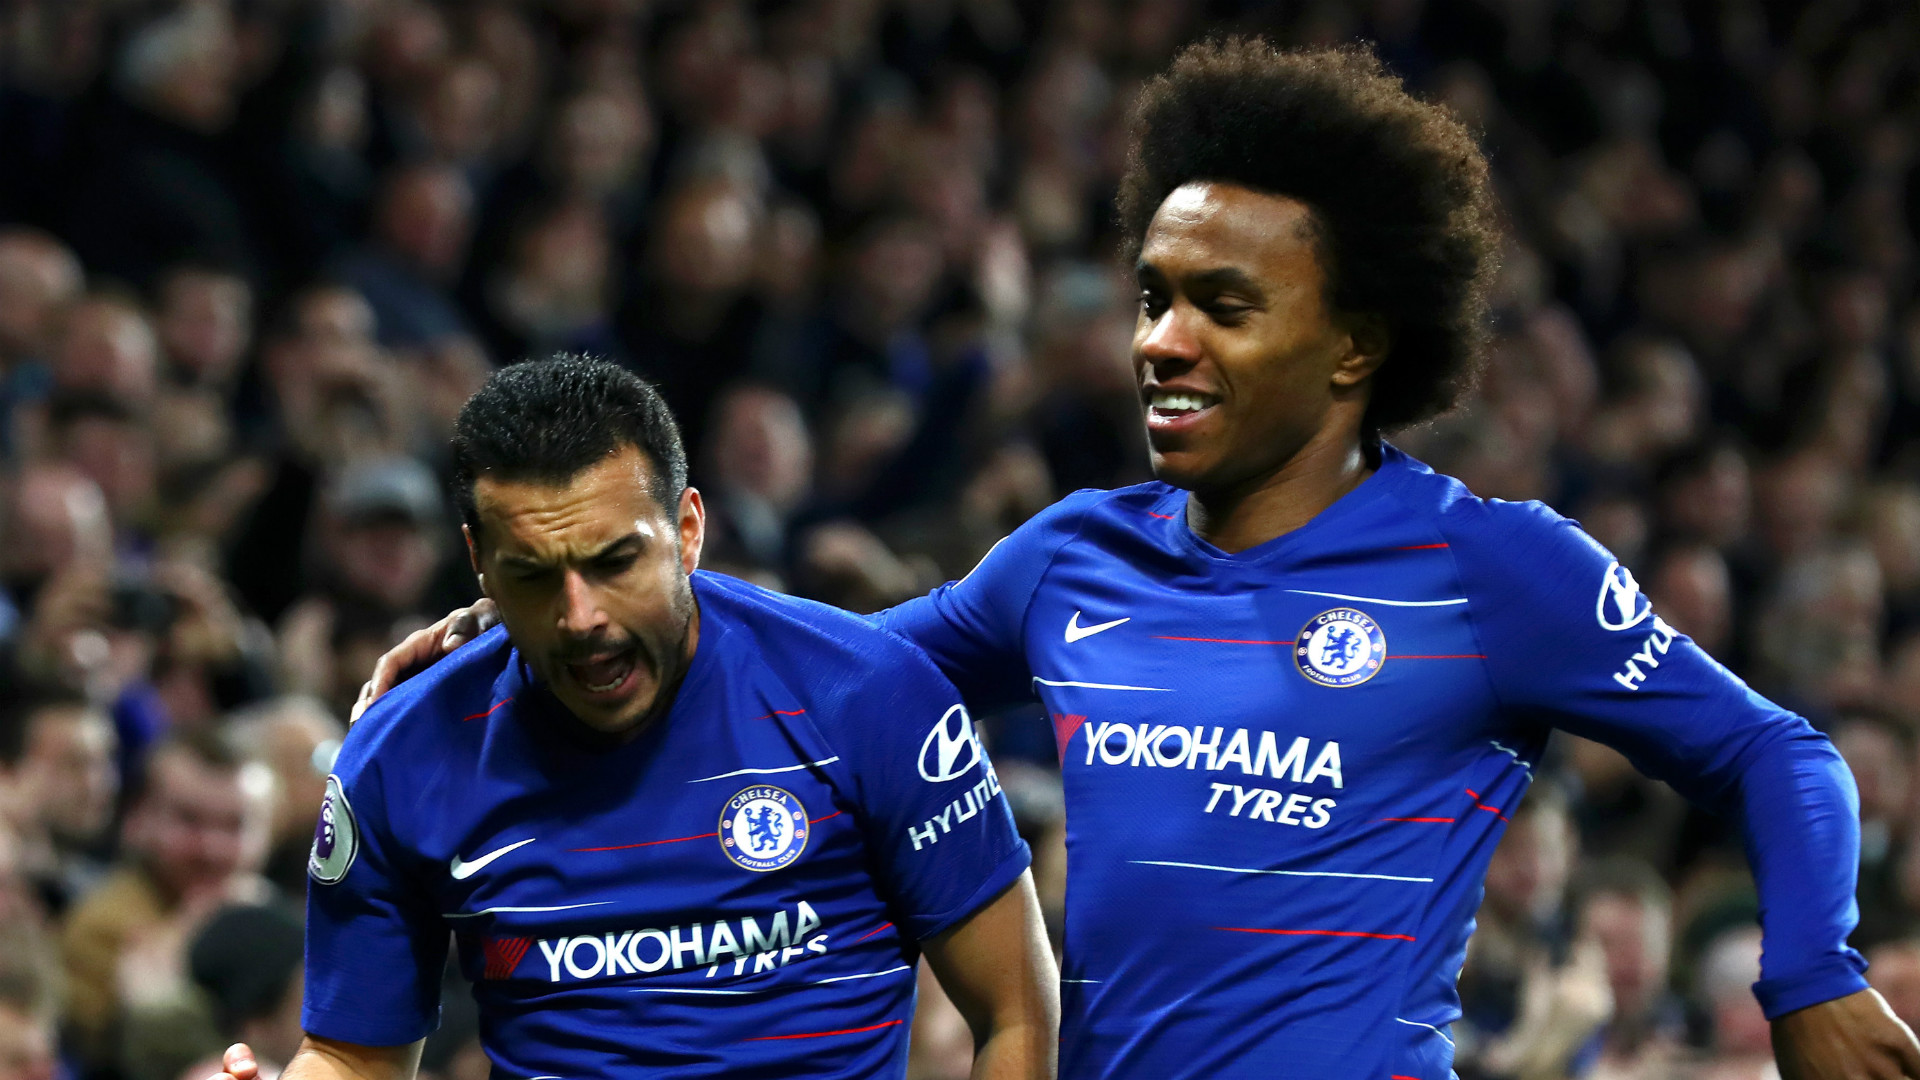 Pedro Willian Chelsea 2018-19